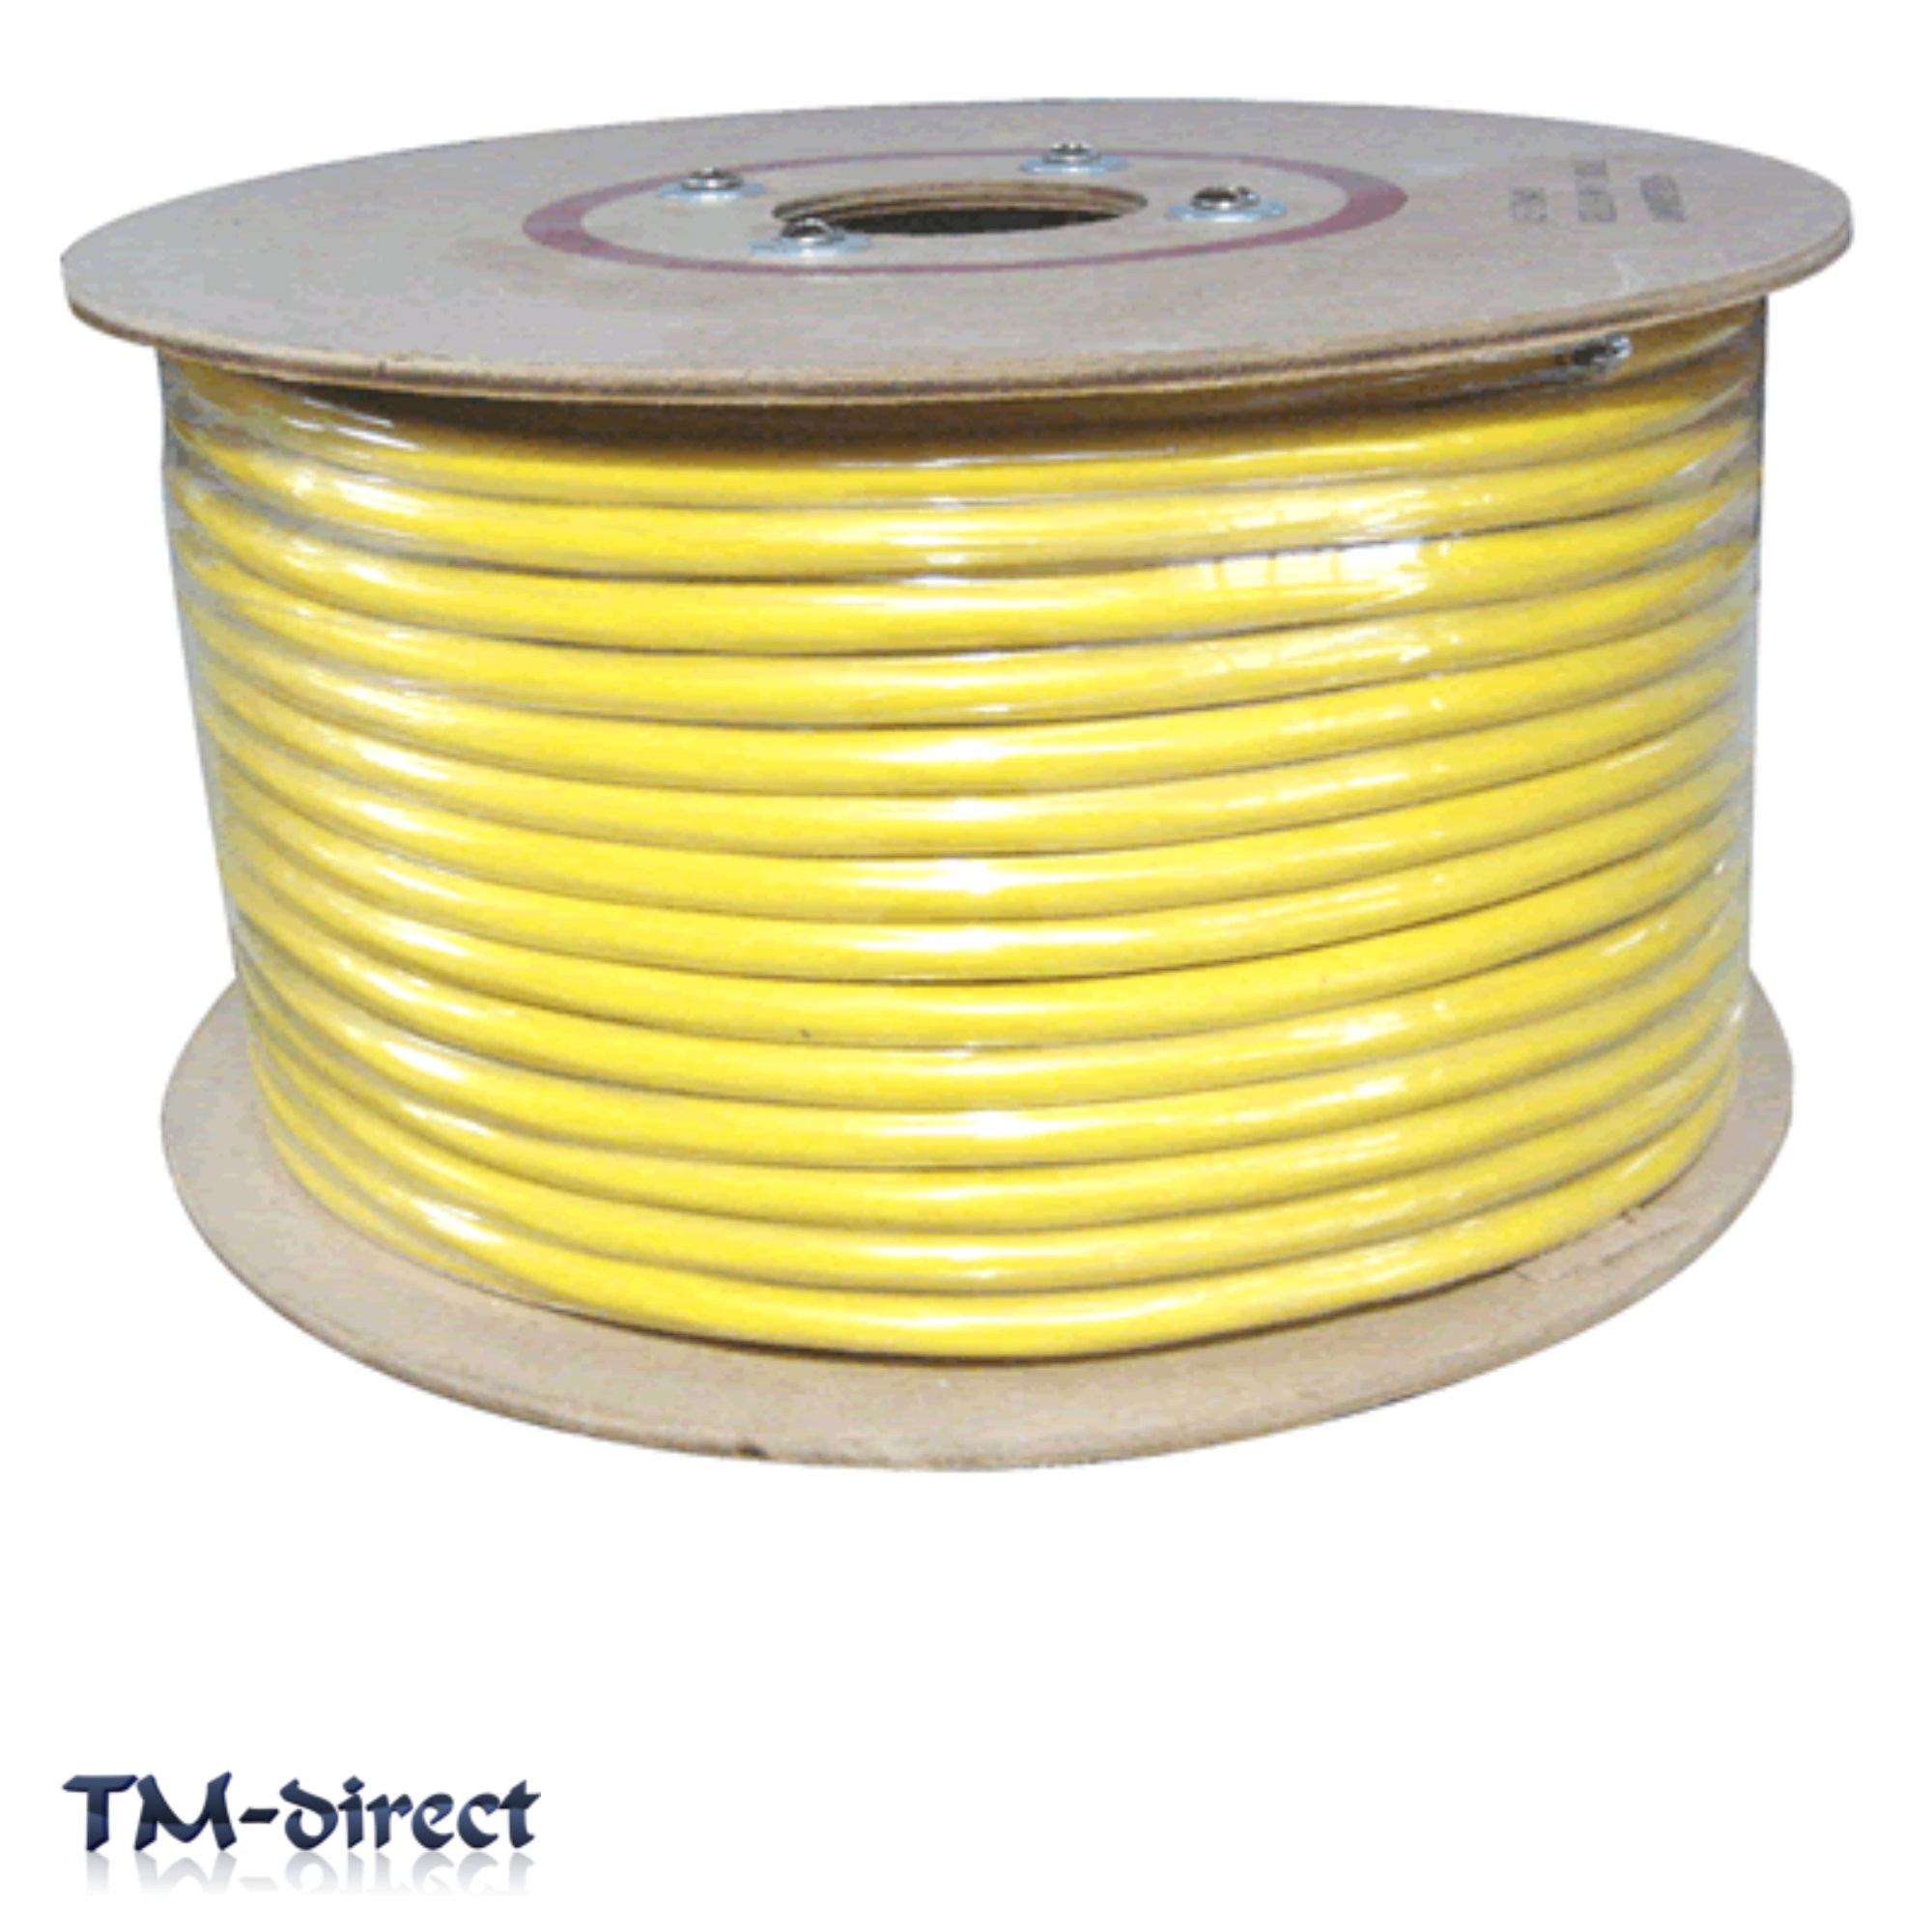 3183Y 3 Core 2.5mm Round Arctic Yellow Cable Flex Wire BY THE METER